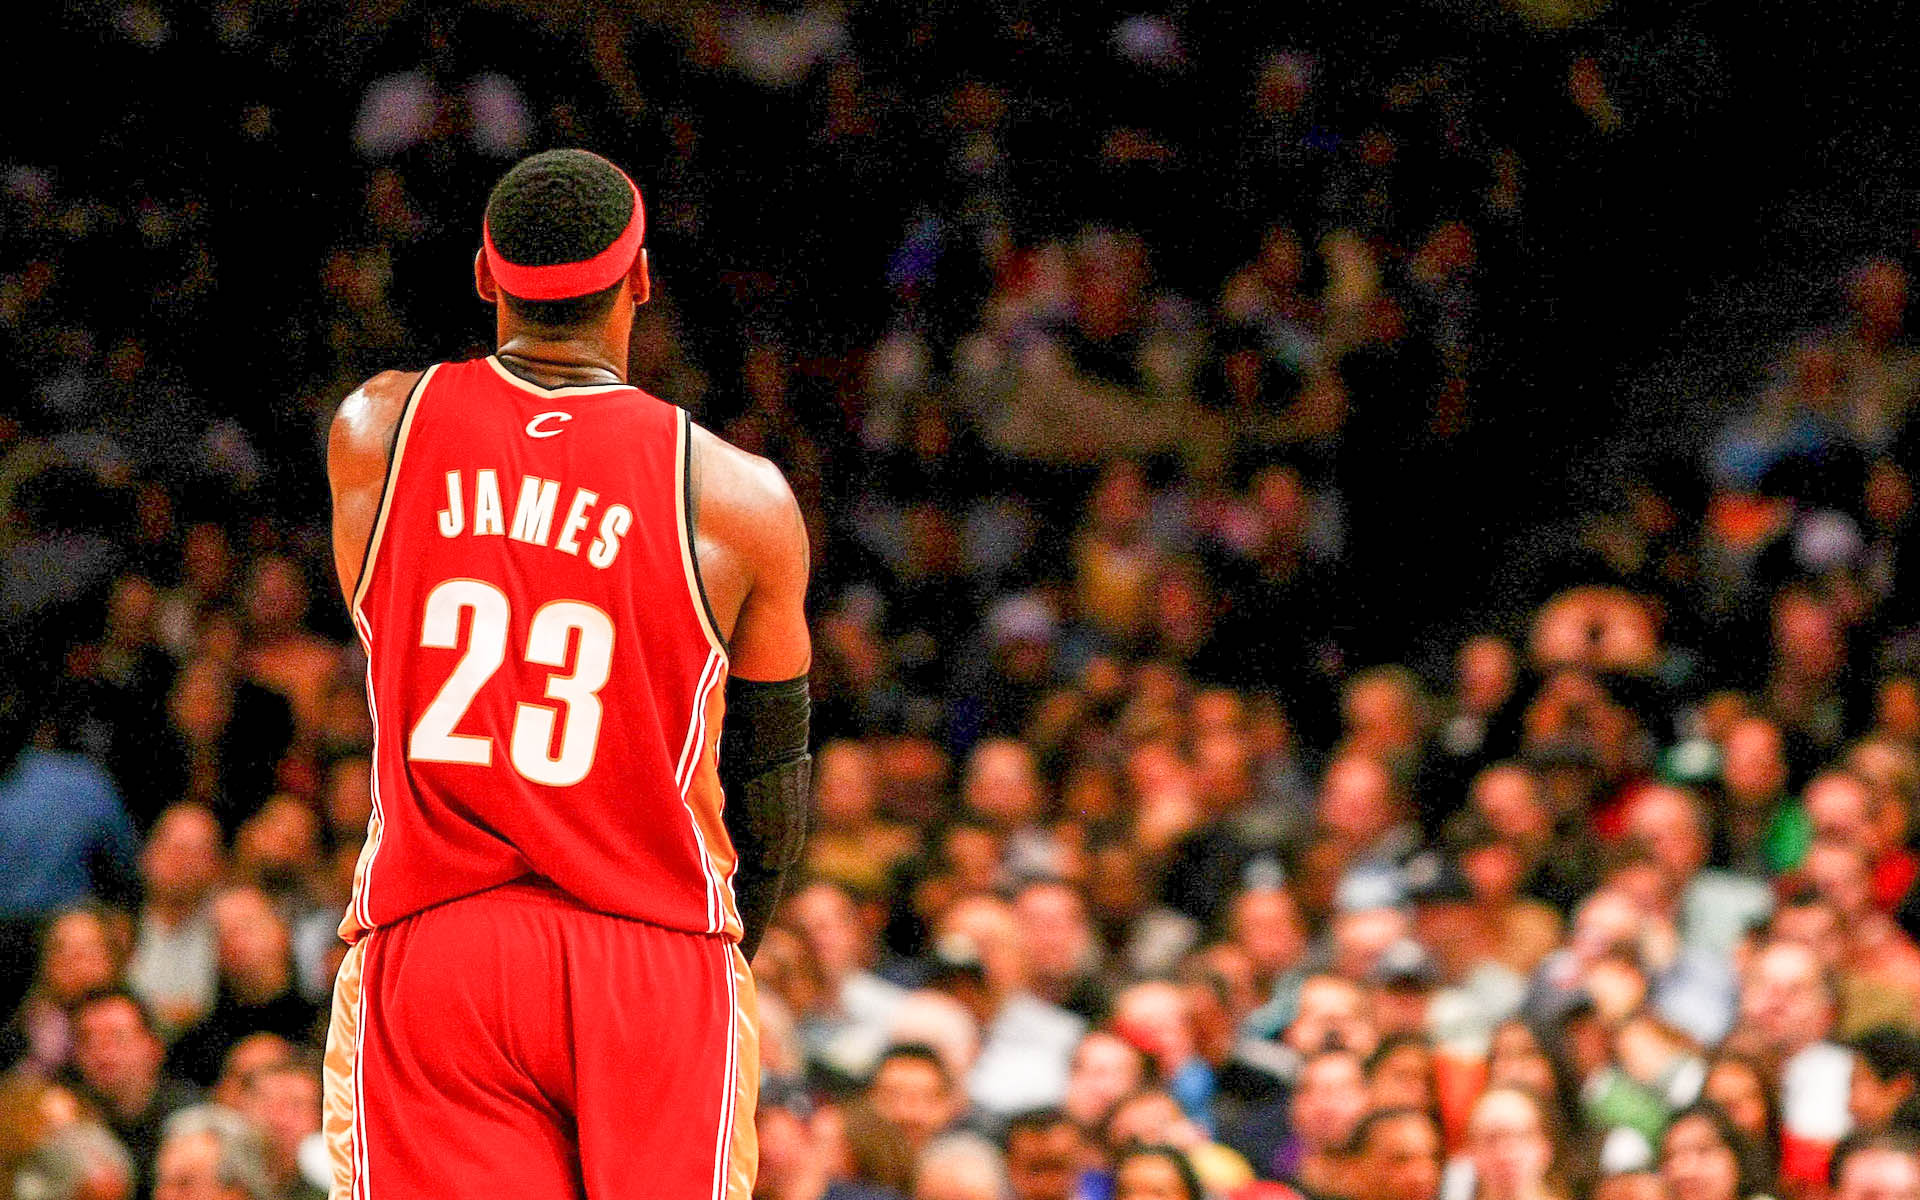 Lebron james awesome hd wallpapers all hd wallpapers - Wallpaper james ...